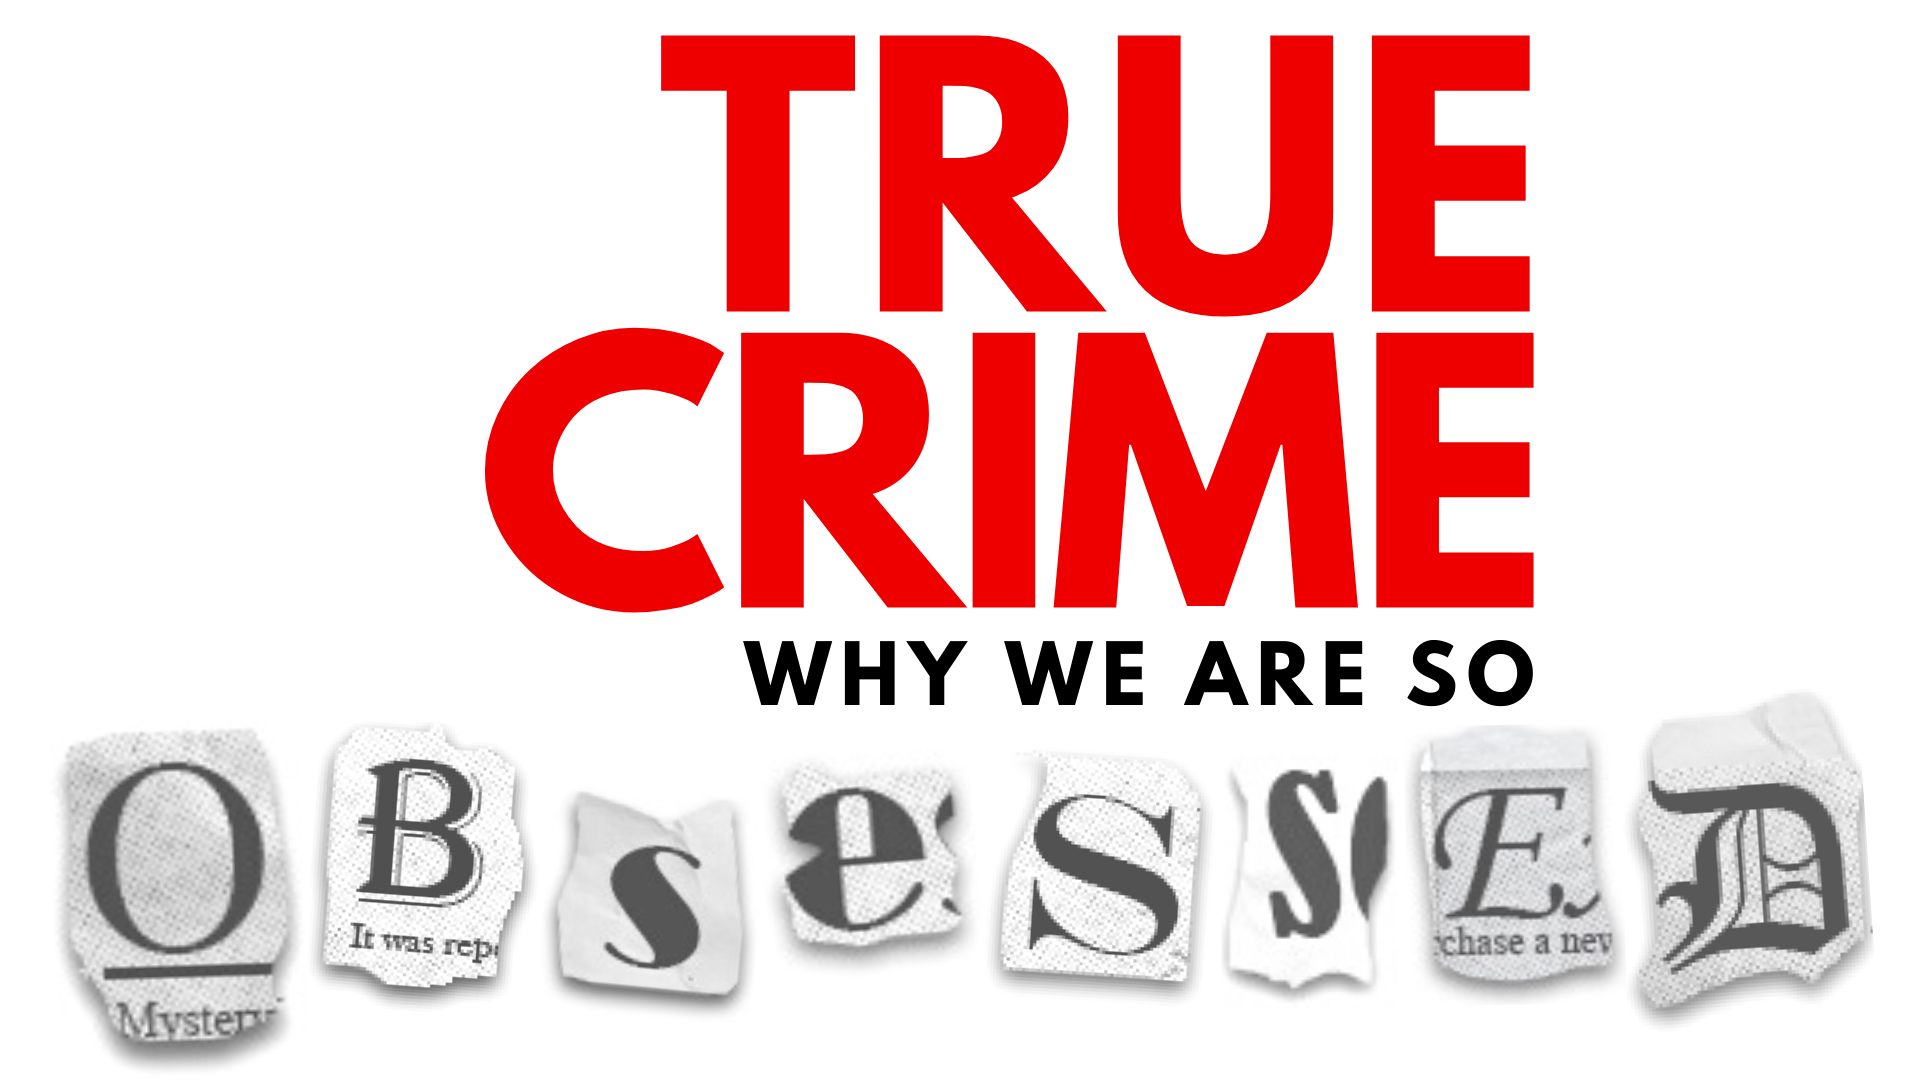 Event Promo Photo For True Crime: Why We Are So Obsessed